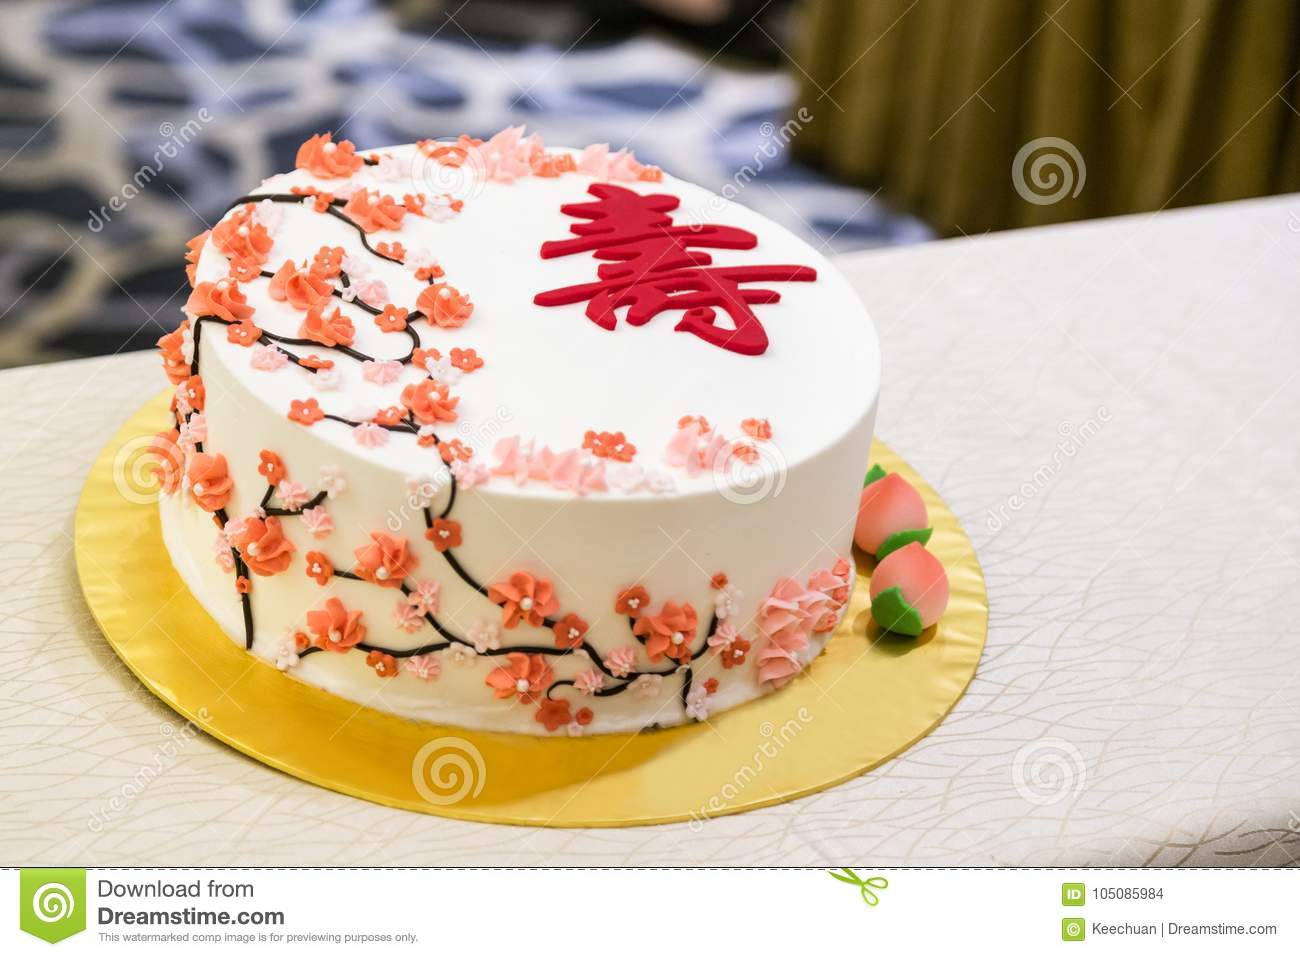 Birthday Cake Celebration For Eldery Person With Chinese Word Lo